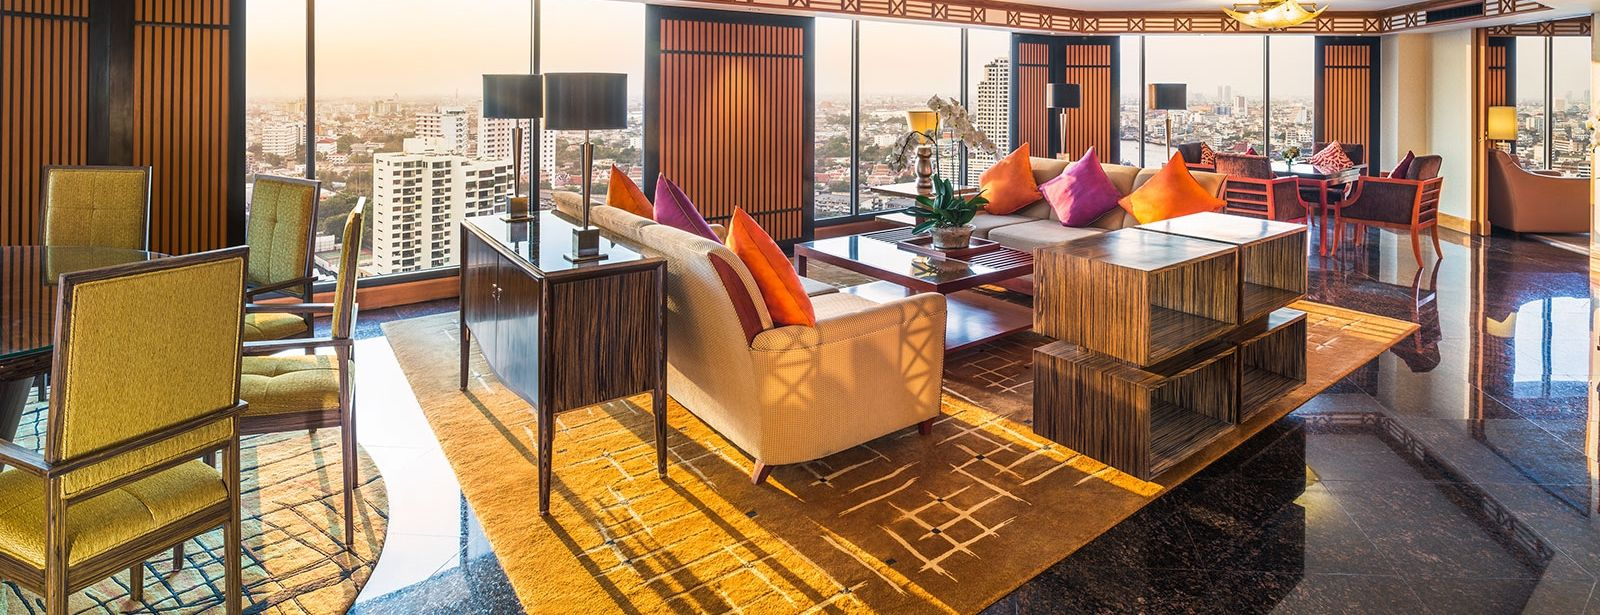 Royal Orchid Presidential Suite - Living Room - Royal Orchid Sheraton Hotel Bangkok